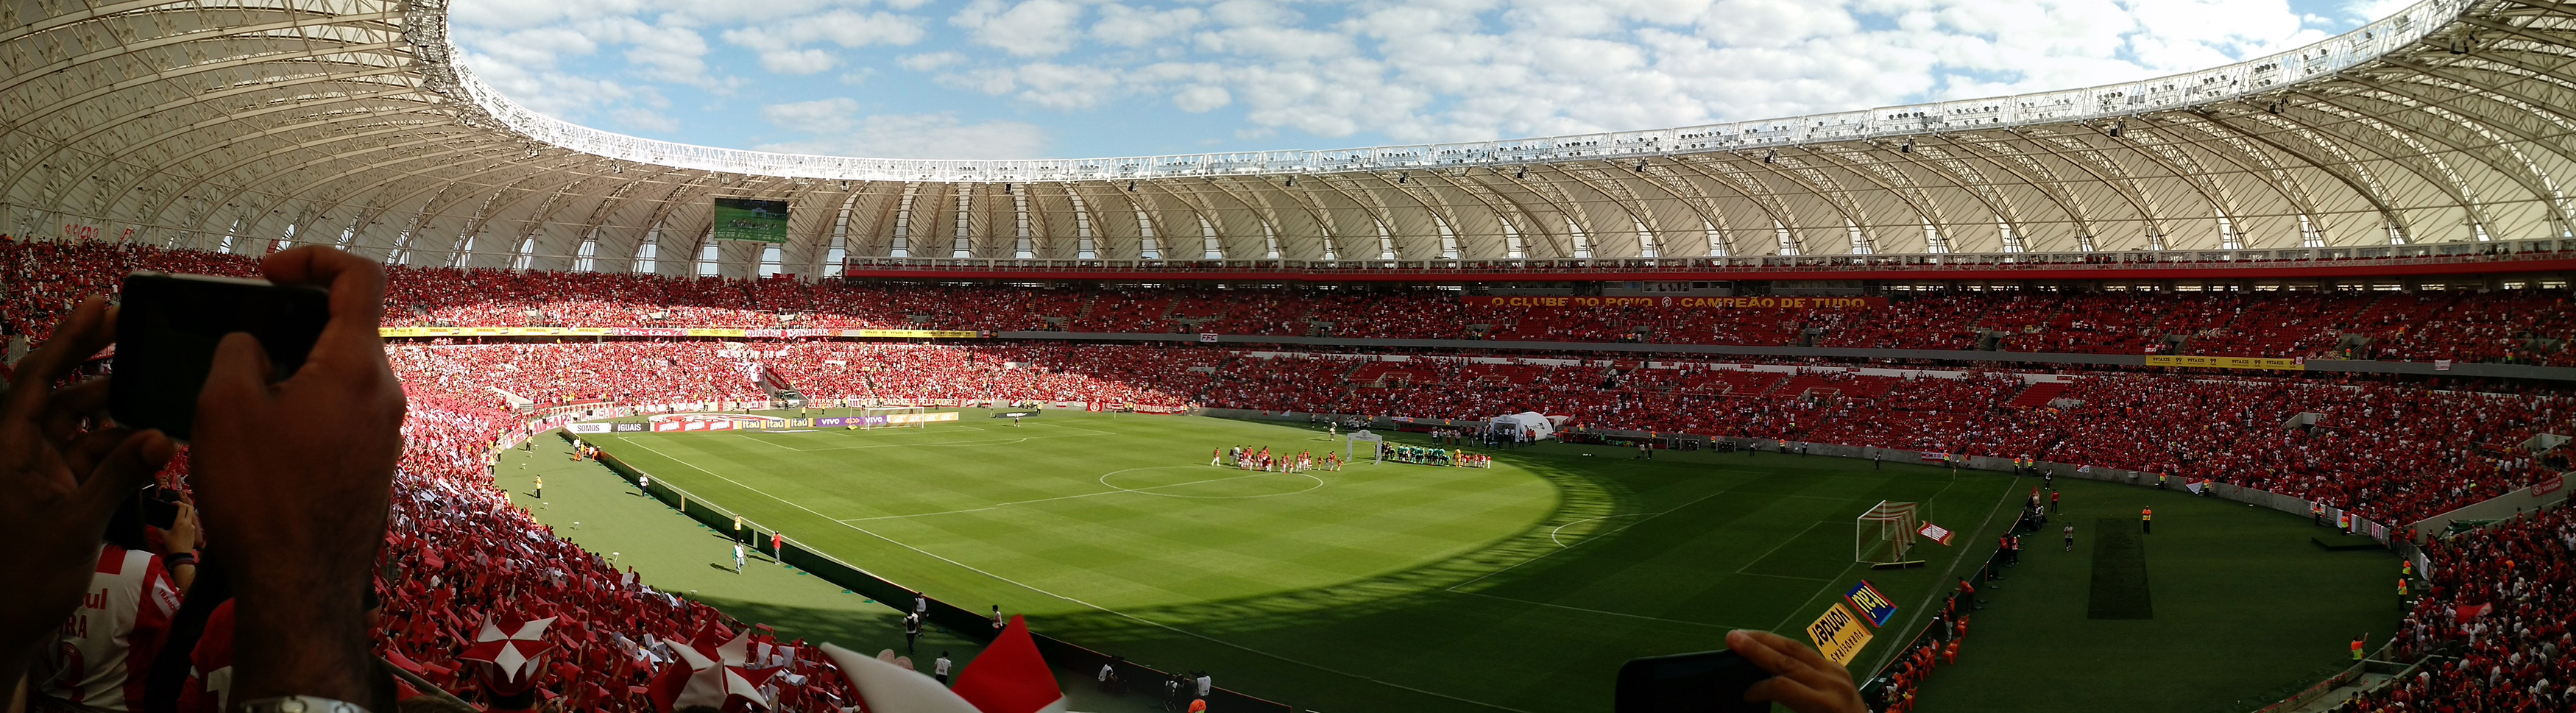 Panorama_Estadio_Beira-Rio3000